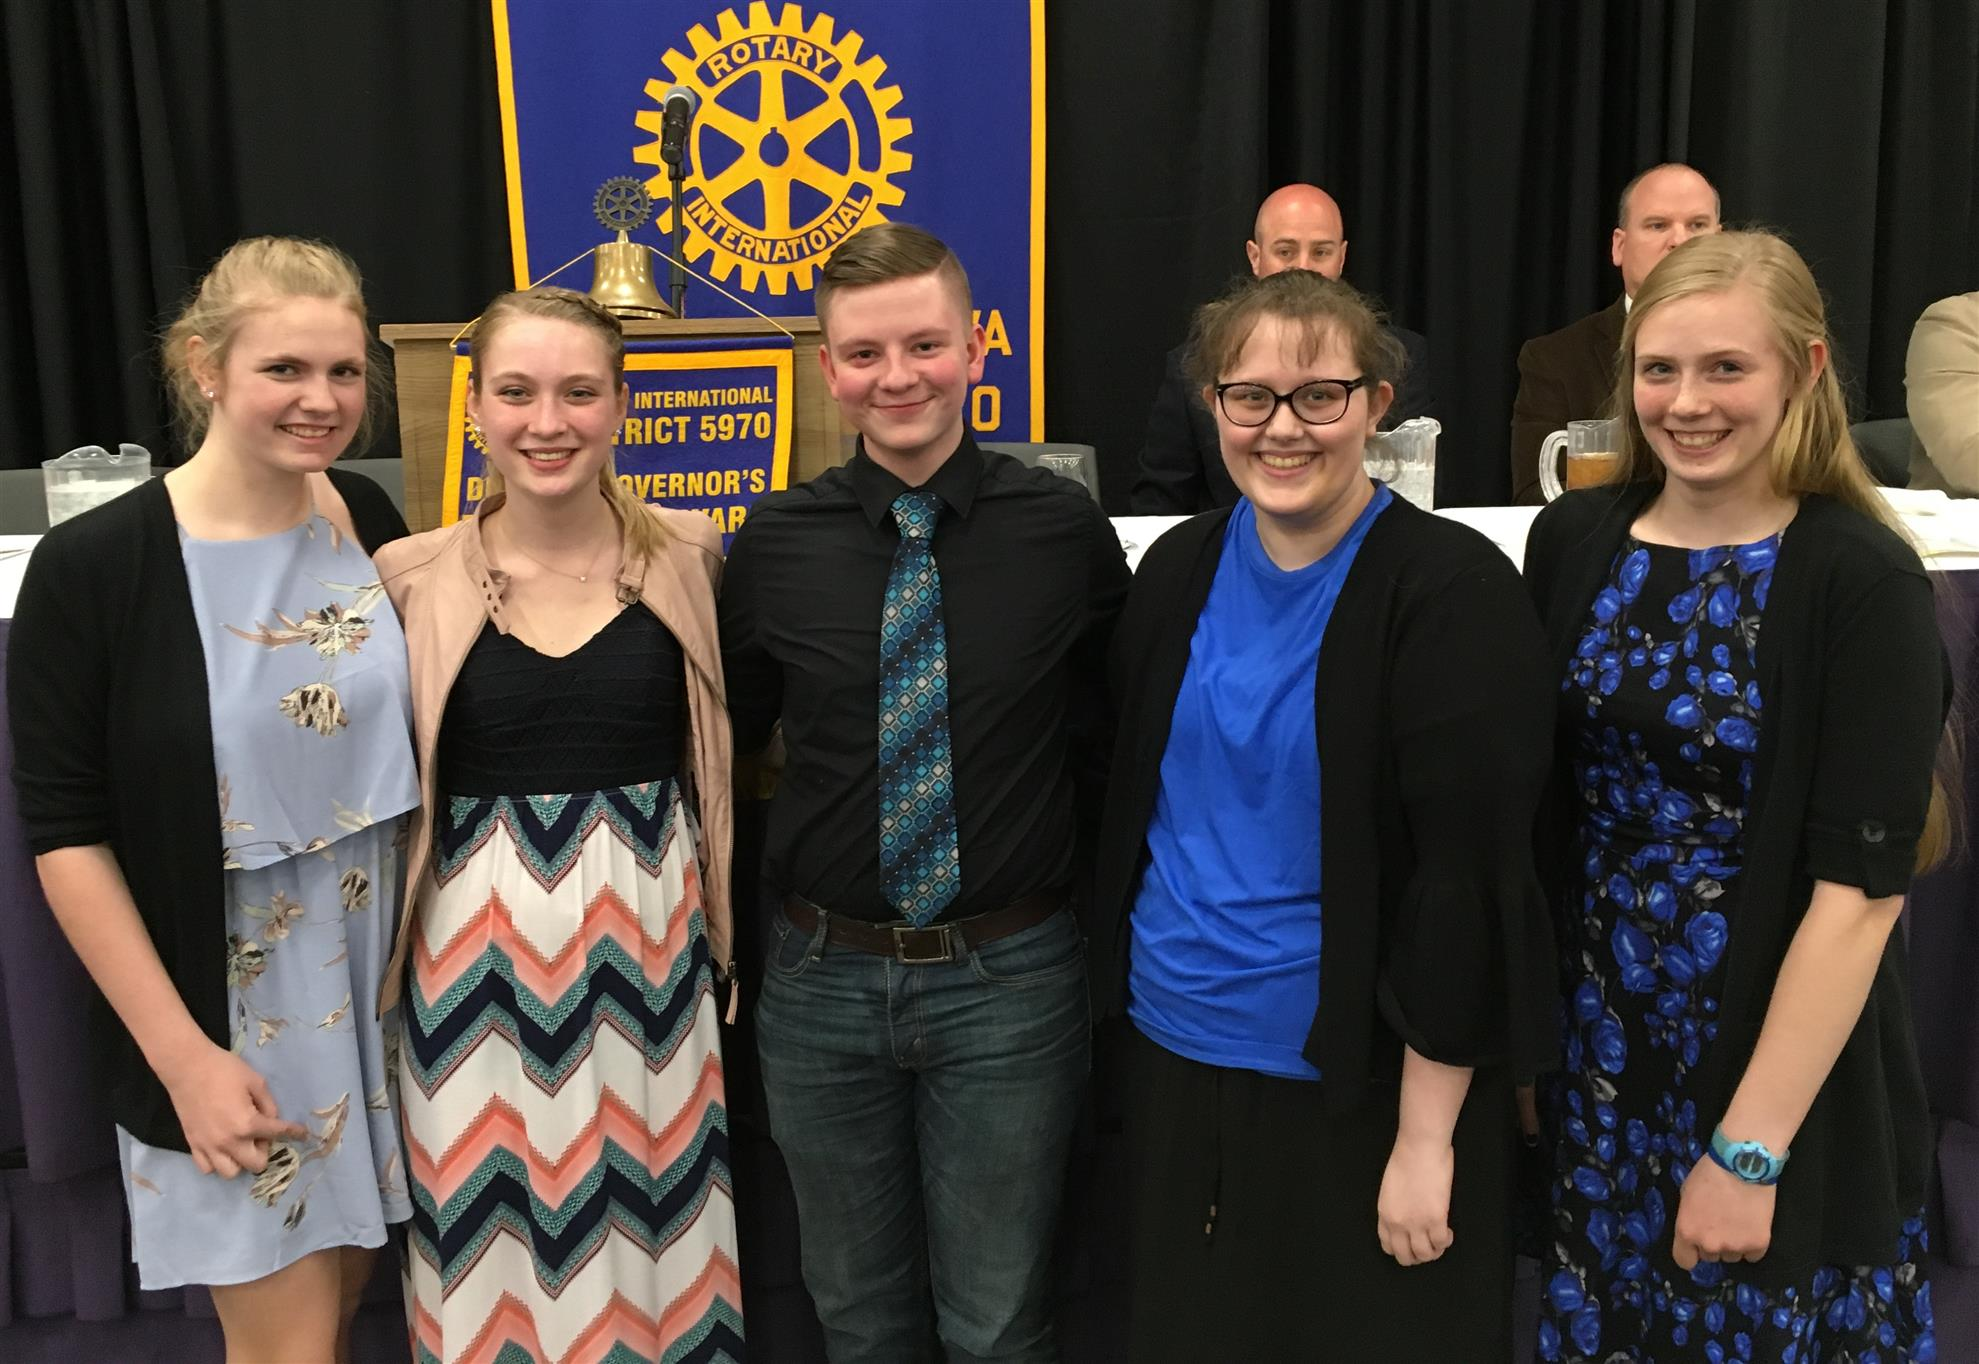 2018 Student Scholars Luncheon Rotary Club Of Waterloo David regenold is on facebook. 2018 student scholars luncheon rotary